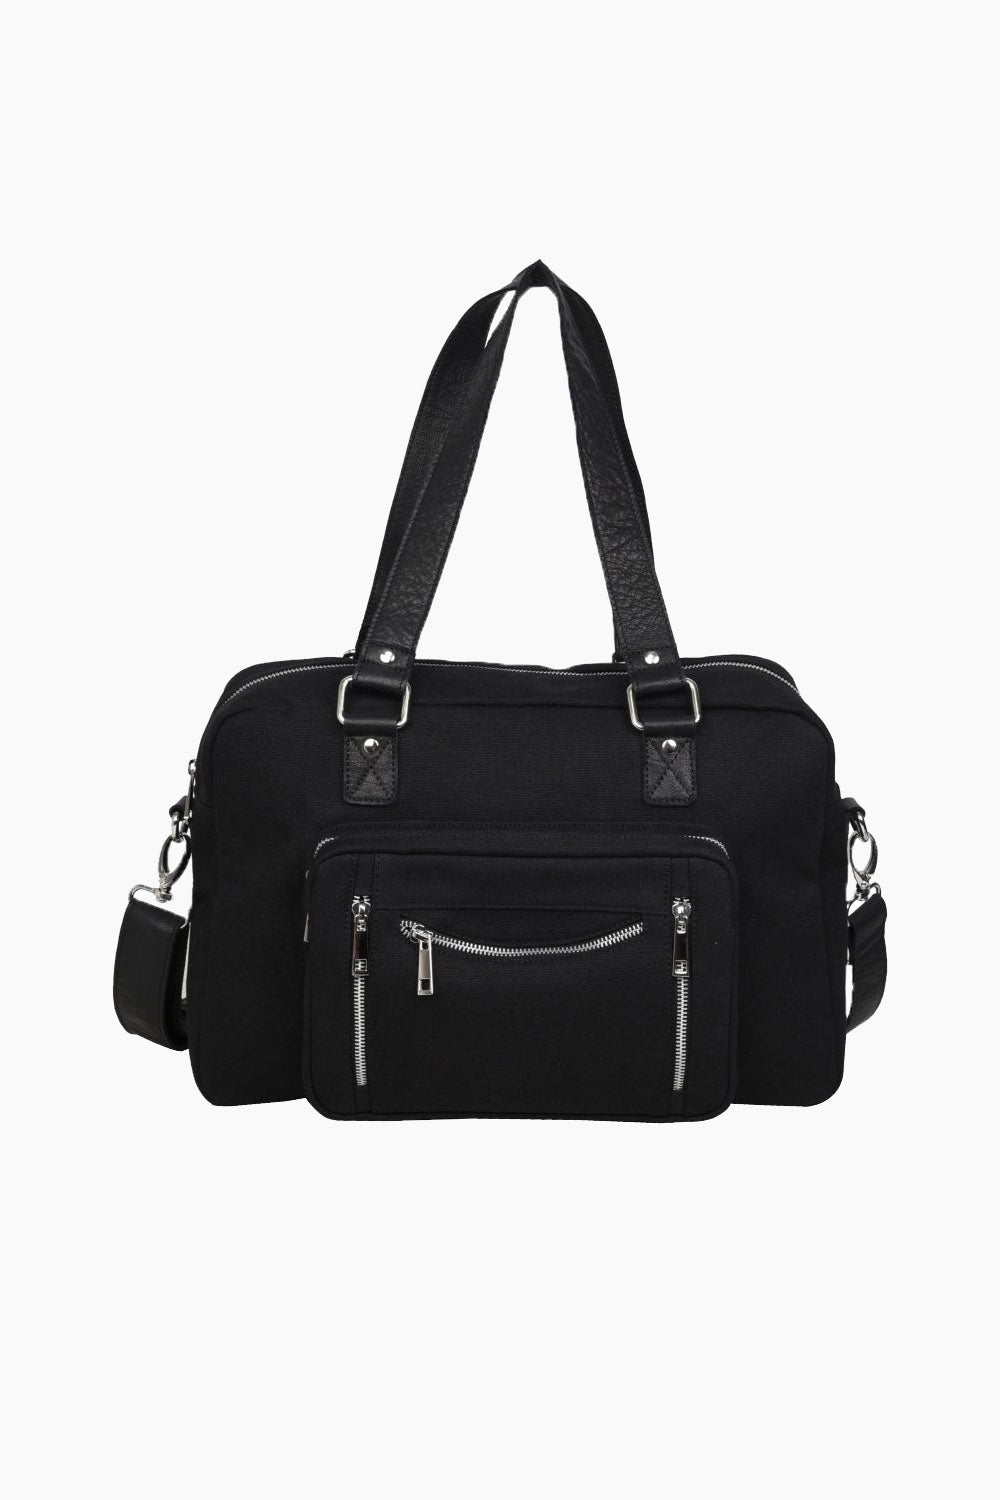 Mille recycled canvas - Black - Núnoo - Sort One Size